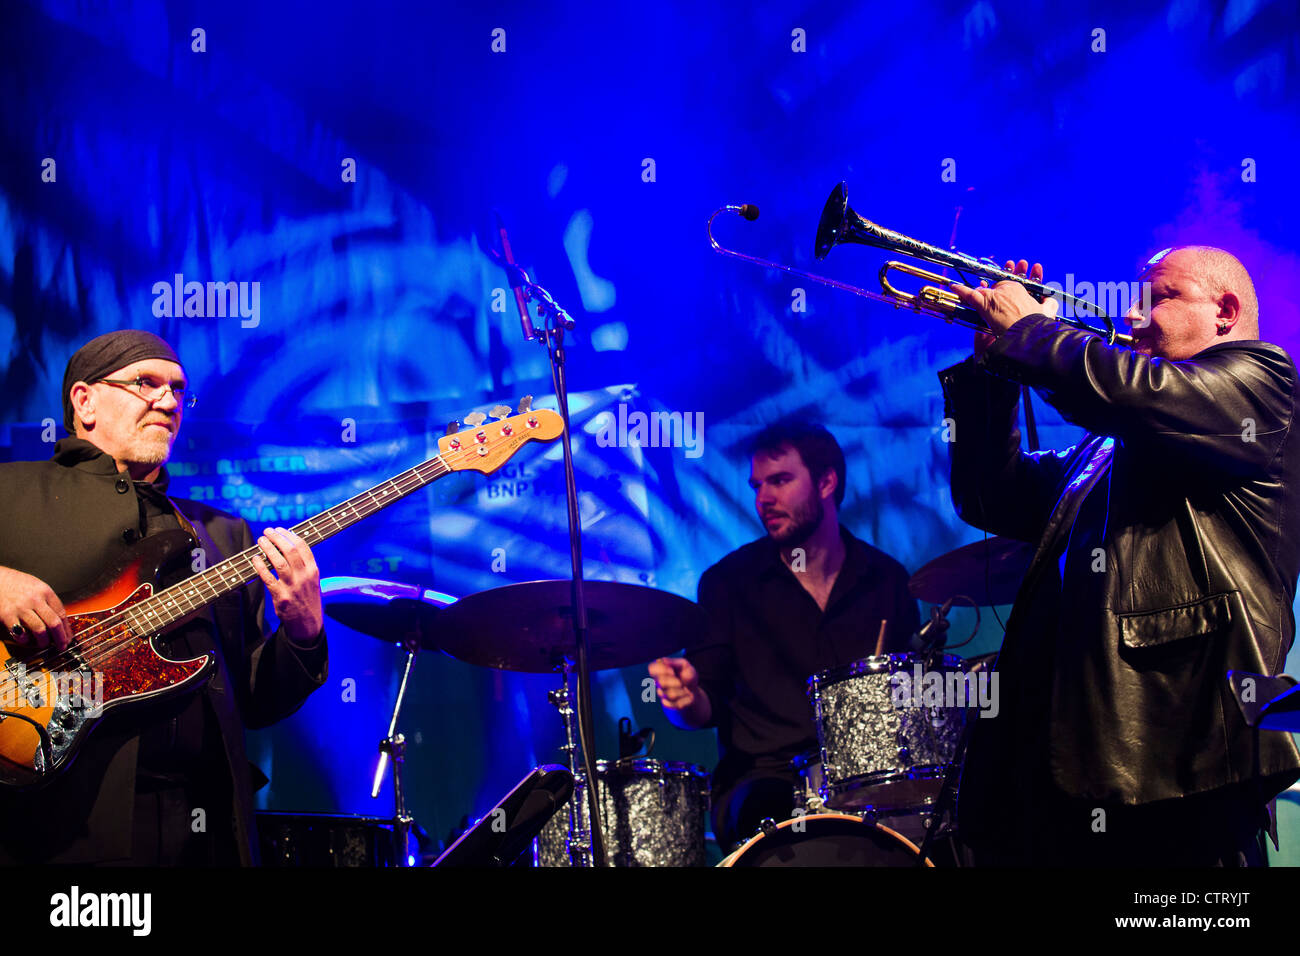 Luxembourg City - Rives de Clausen - Concert by Gast Waltzing and Friends at the Blues and Jazz Rallye. - Stock Image